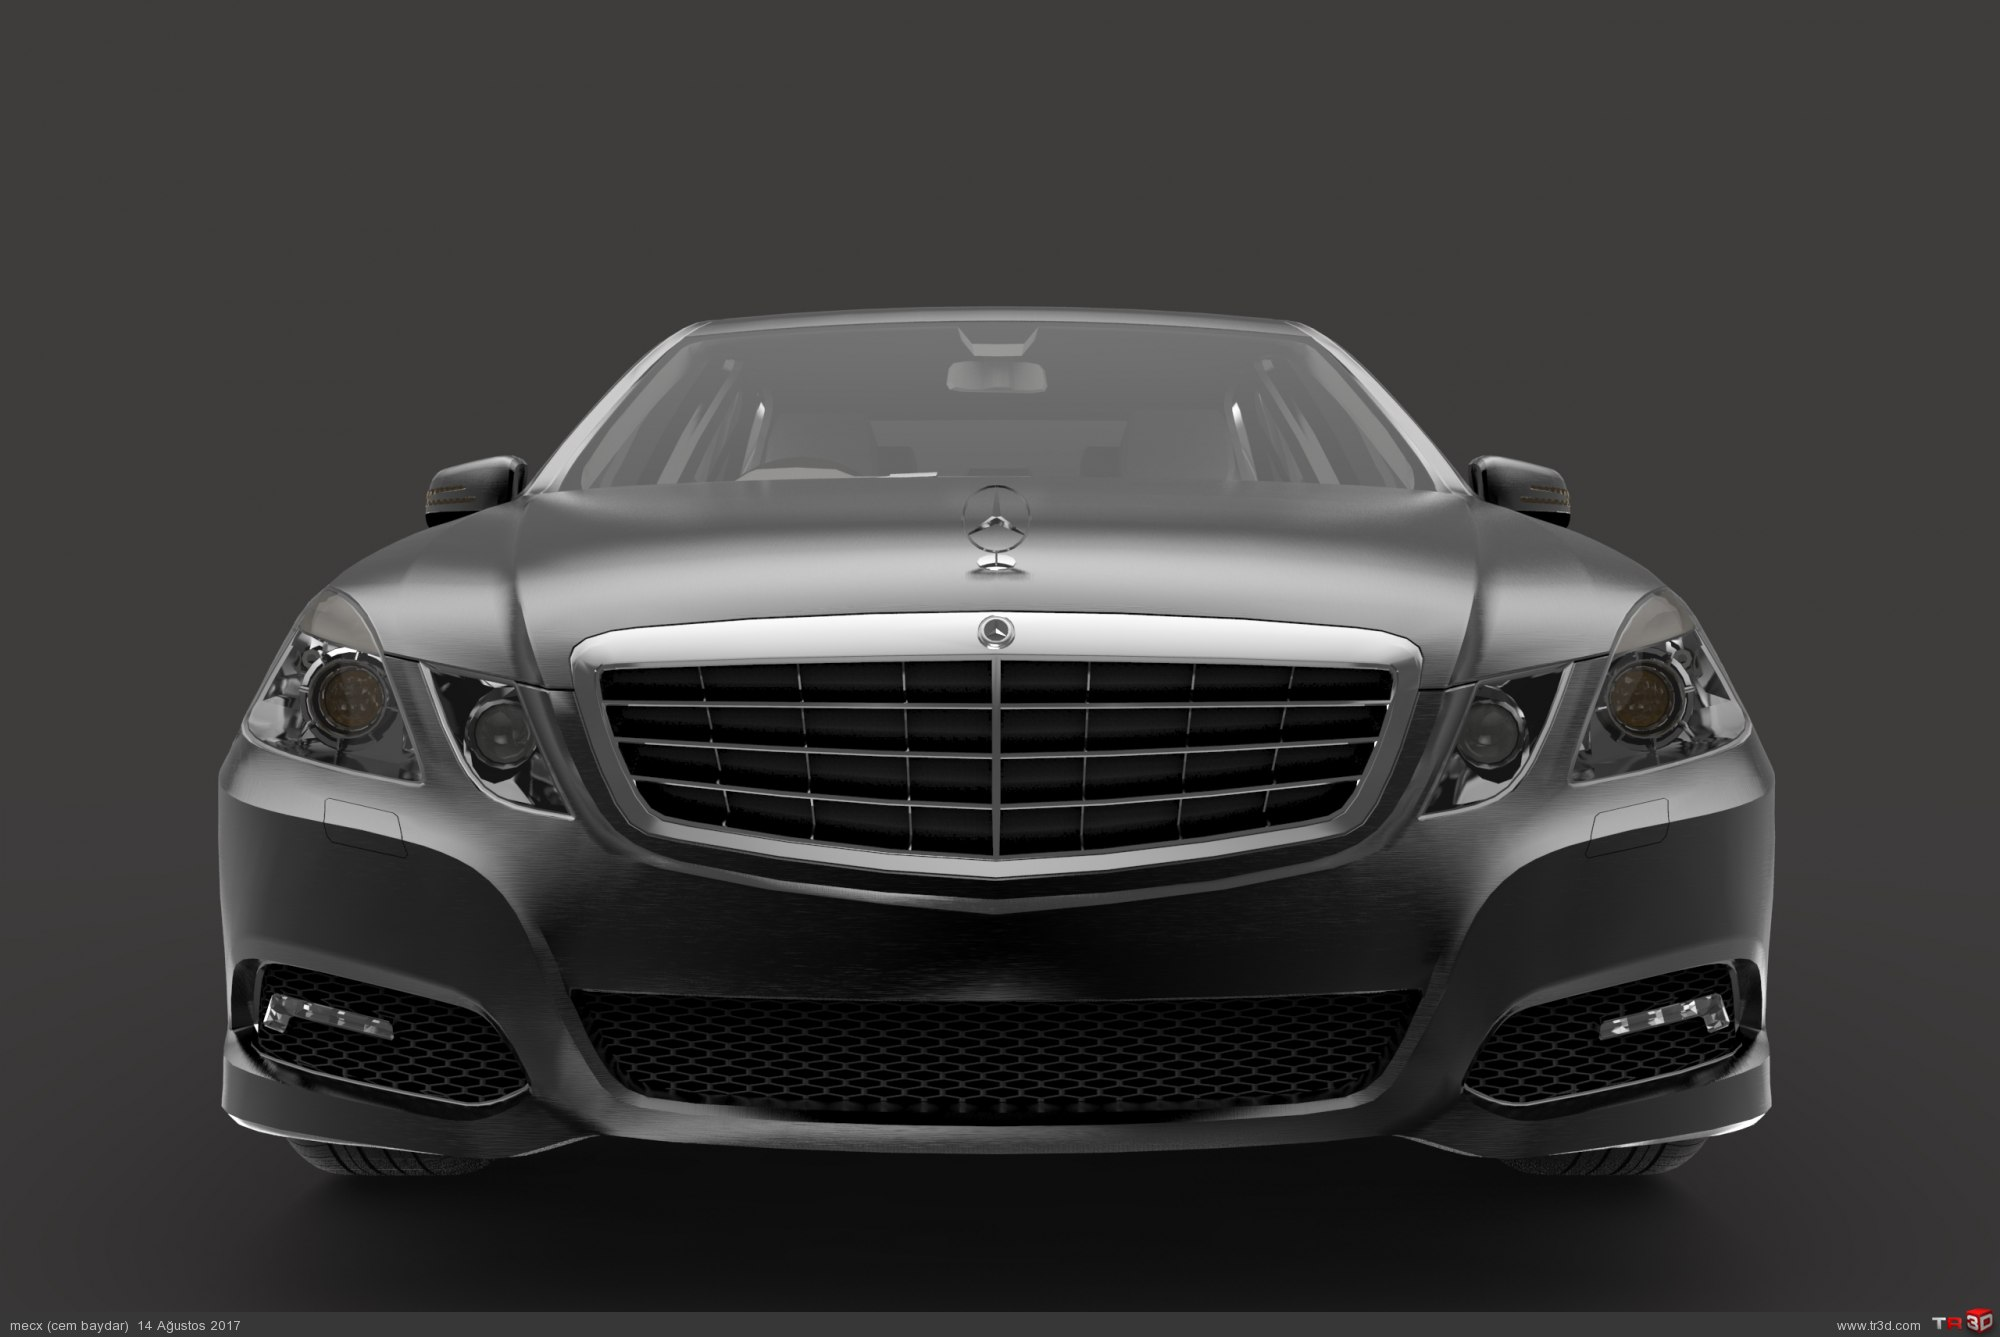 2010+Mercedes-Benz+E250+CGI+Avantgarde